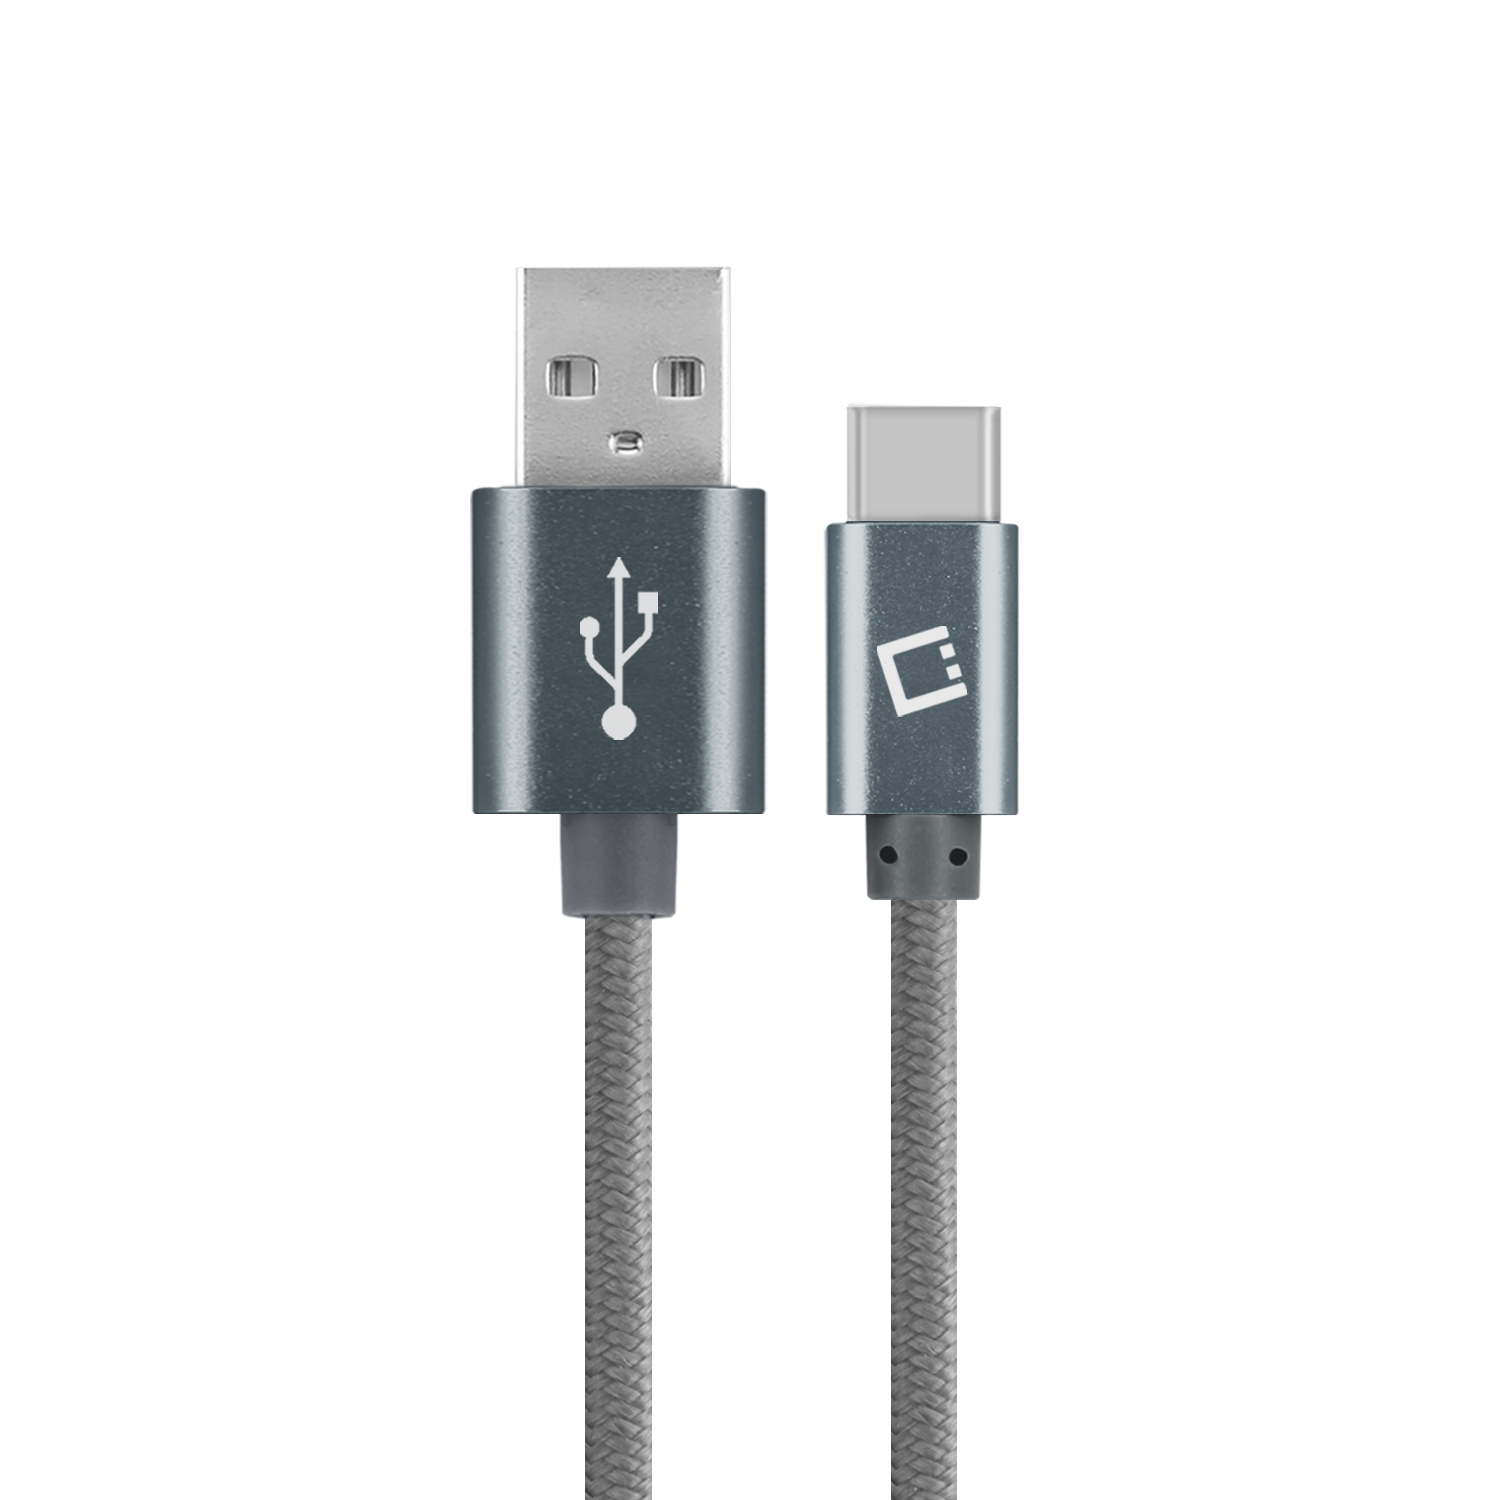 Samsung Galaxy S10e USB Type-C To Type-A Braided Data Power Cable Grey 4ft Braided